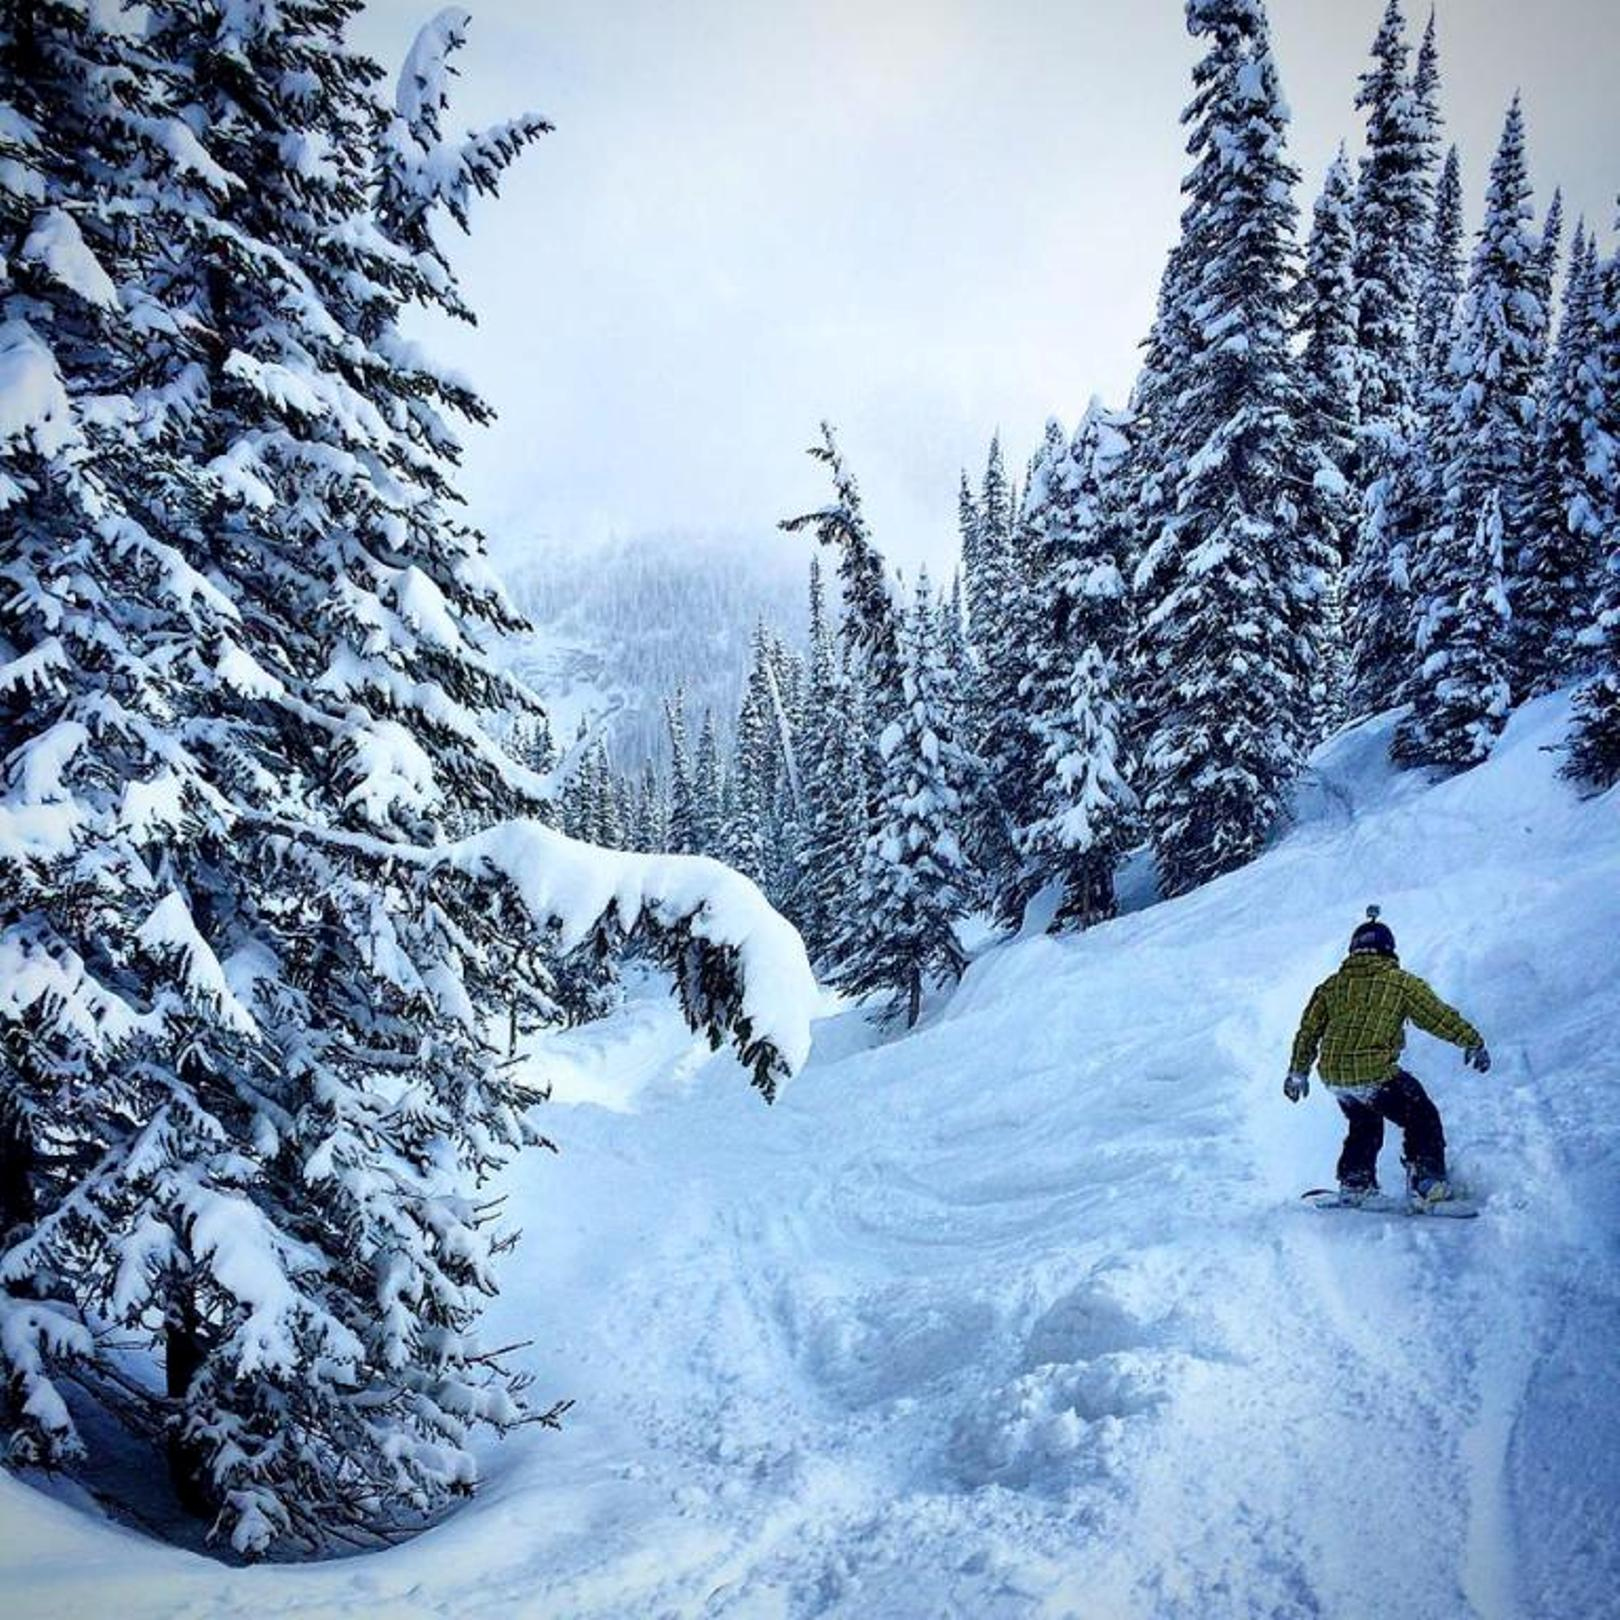 This photo was taken at Sunshine Village Ski & Snowboard Resort in Banff, Alberta, Canada, after a 39 cm snowfall.